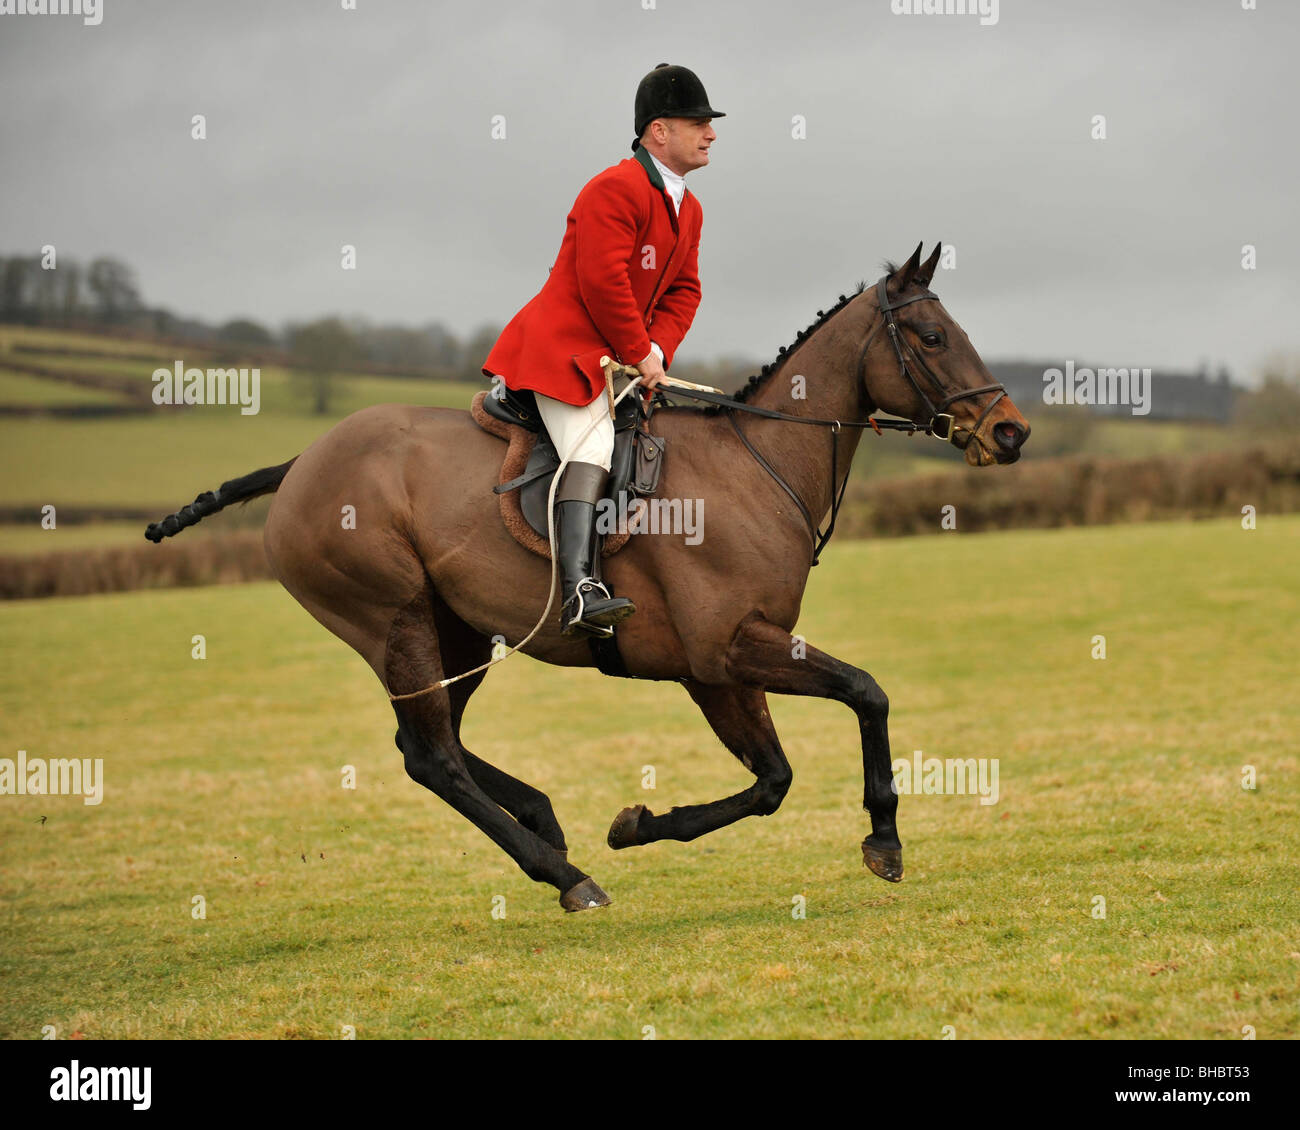 huntsman of lamerton foxhounds galloping after his hounds - Stock Image